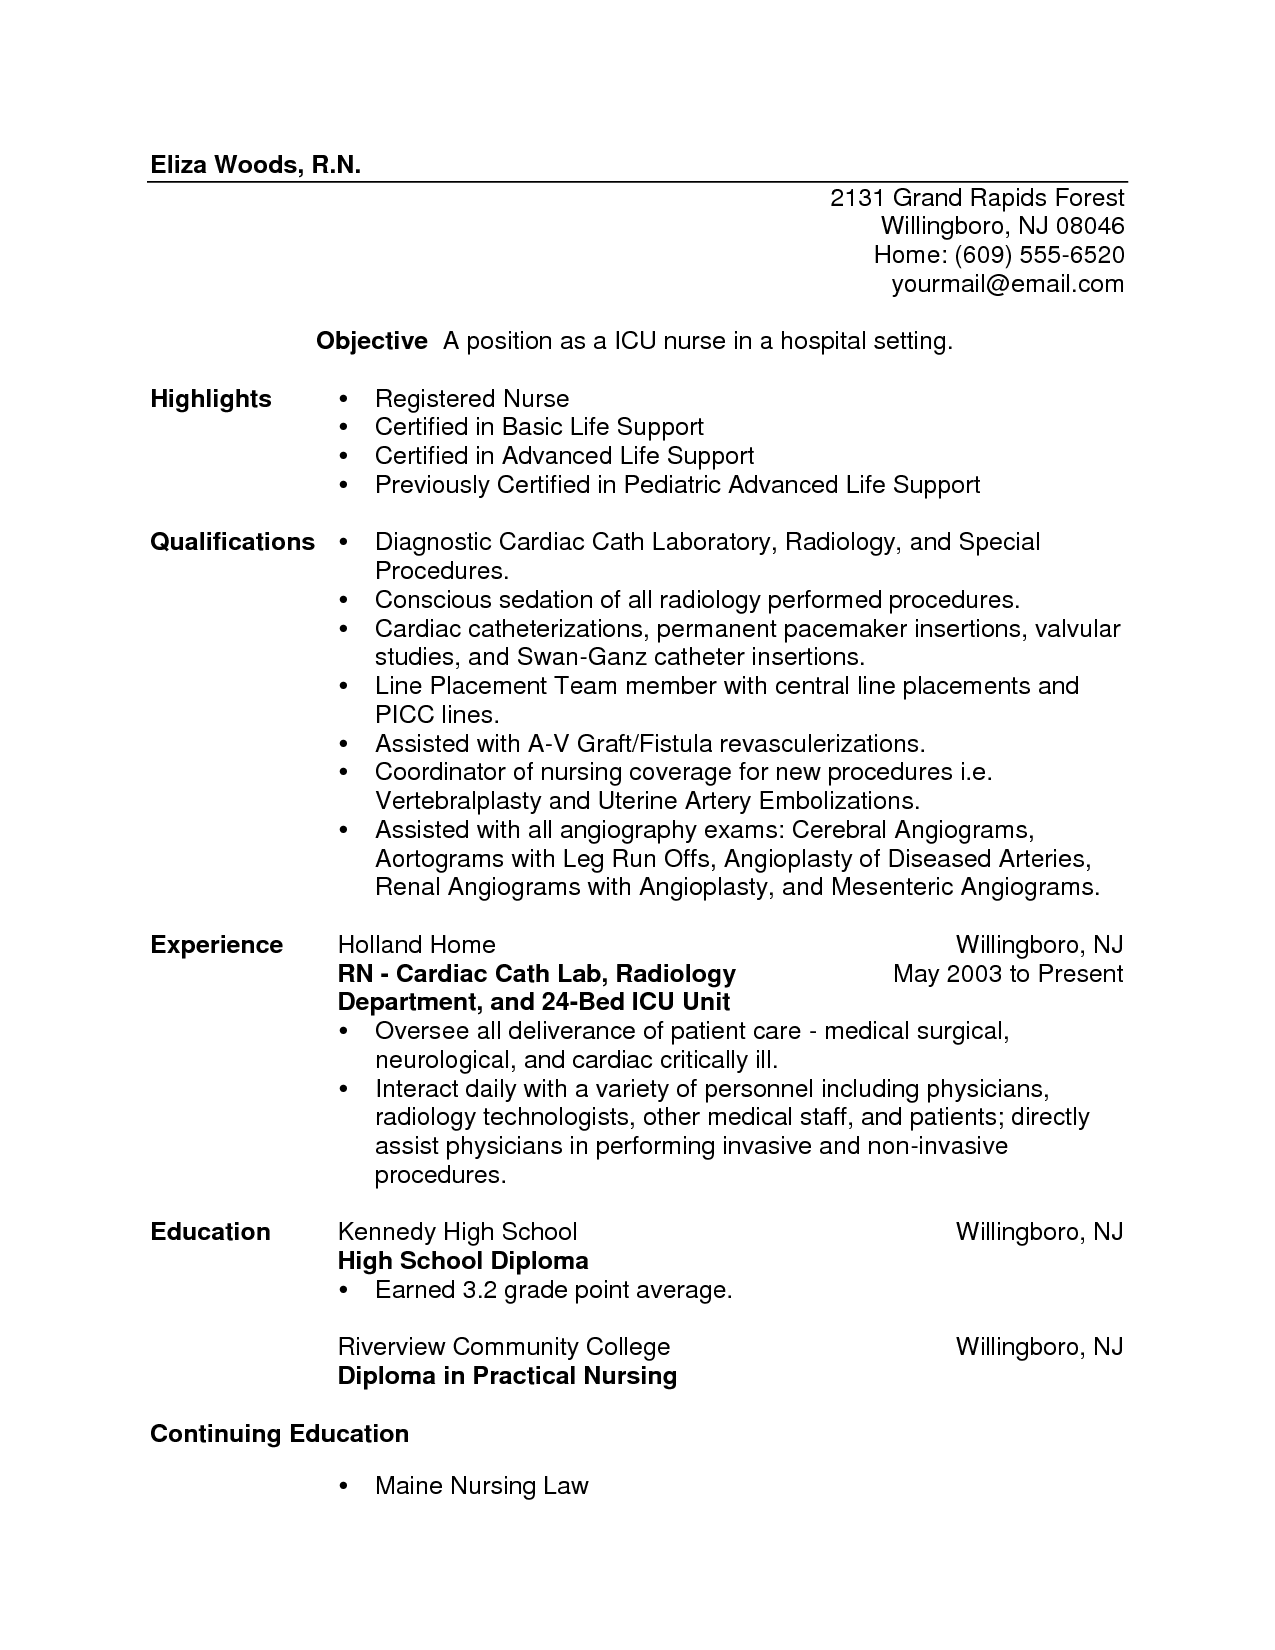 Rn New Grad Resume Mesmerizing Nurse Resumes  Nurse Resume Sample New Grad Nursing Resume .